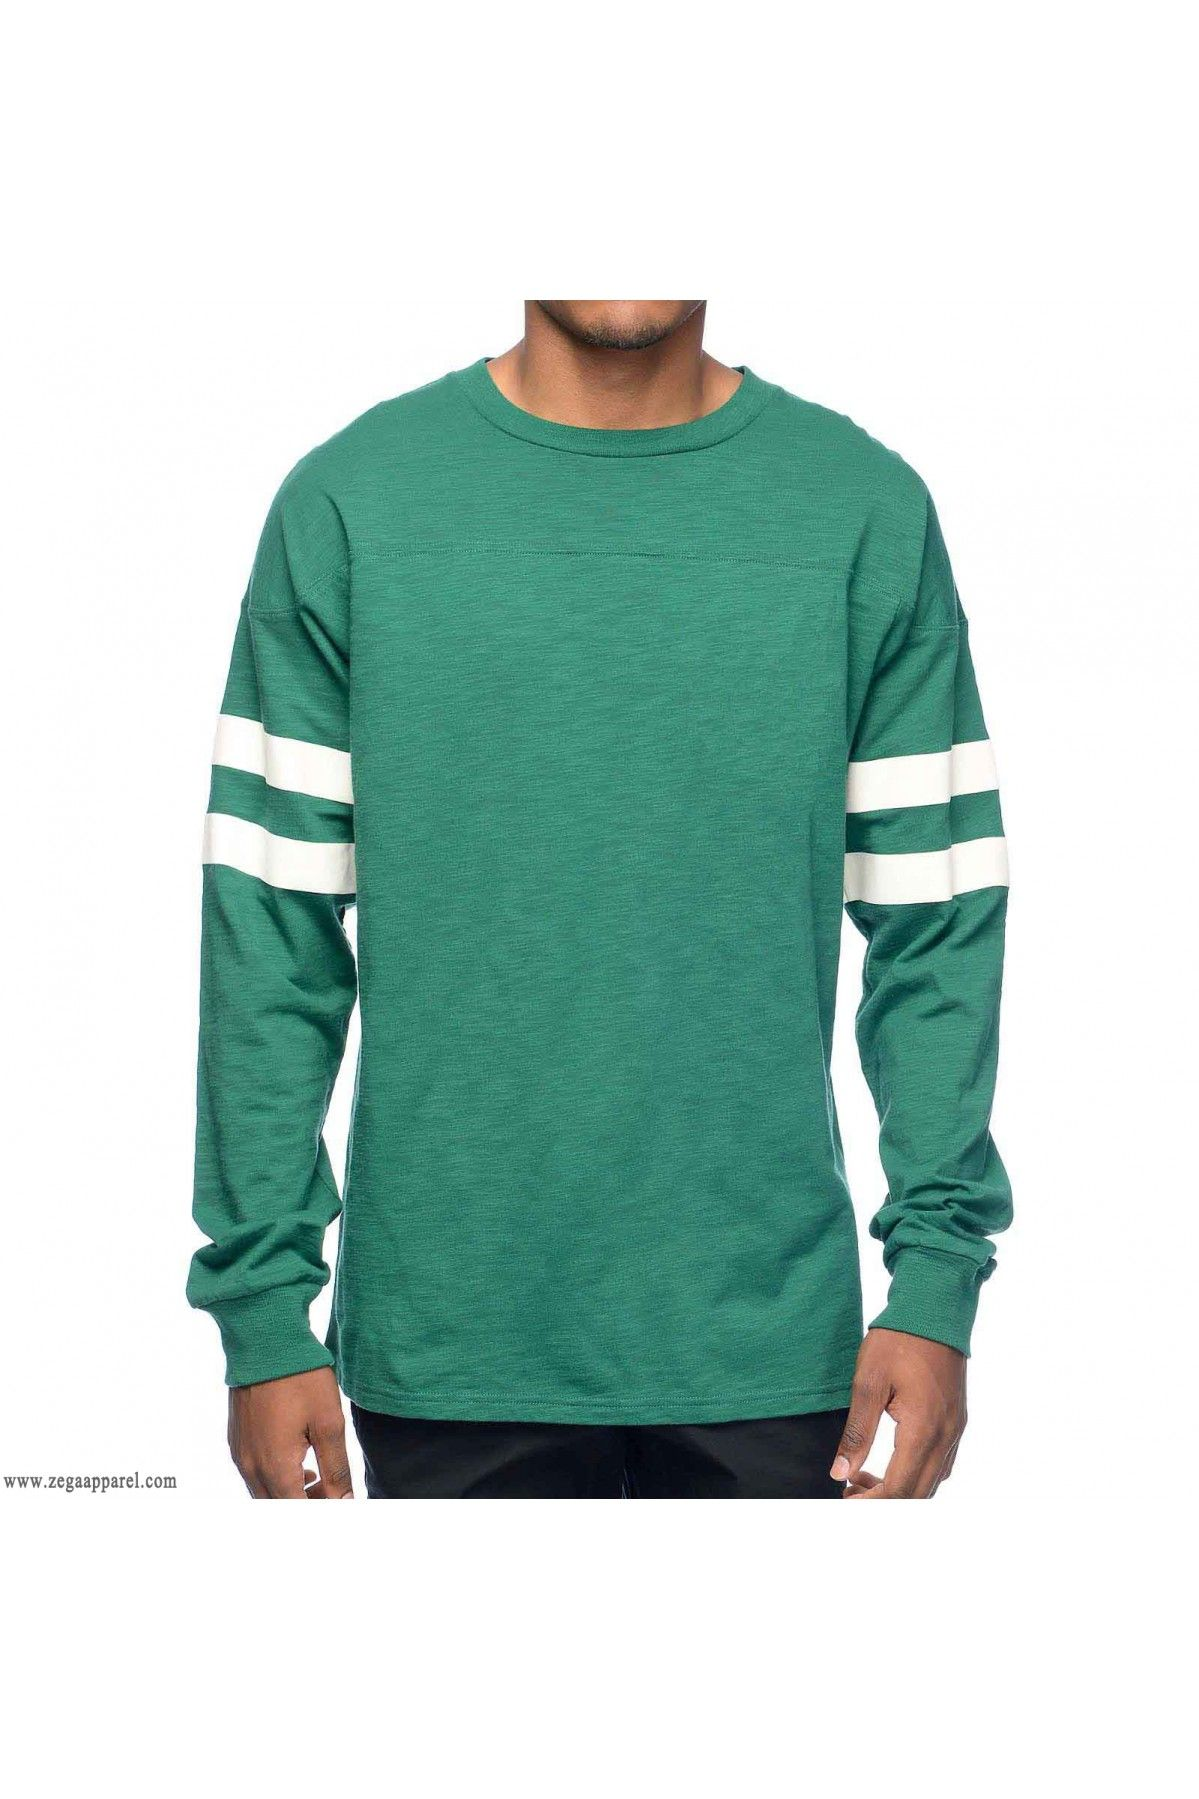 1c482db9 The Custom Made Zega Apparel Cut and Sew Long Sleeve Basic T shirts are made  to order from the start, customers can have any sort of customization in  any ...